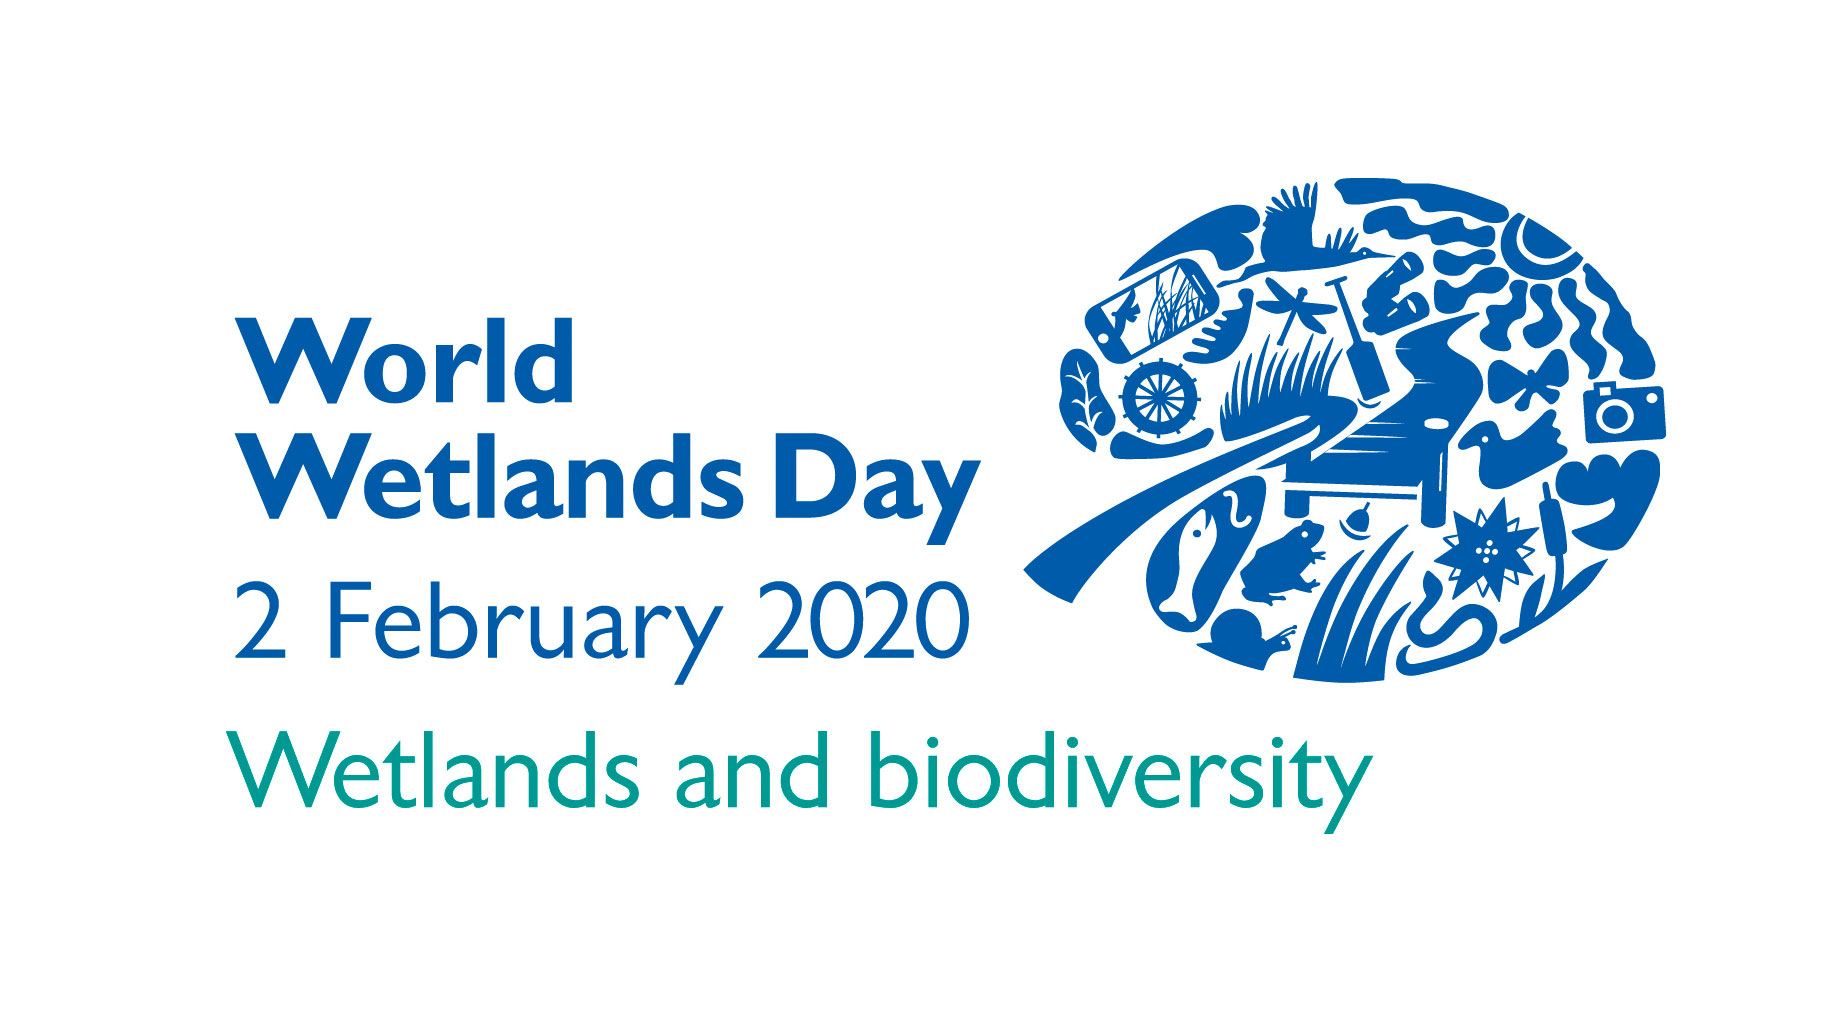 World Wetlands Day - 2nd February 2020